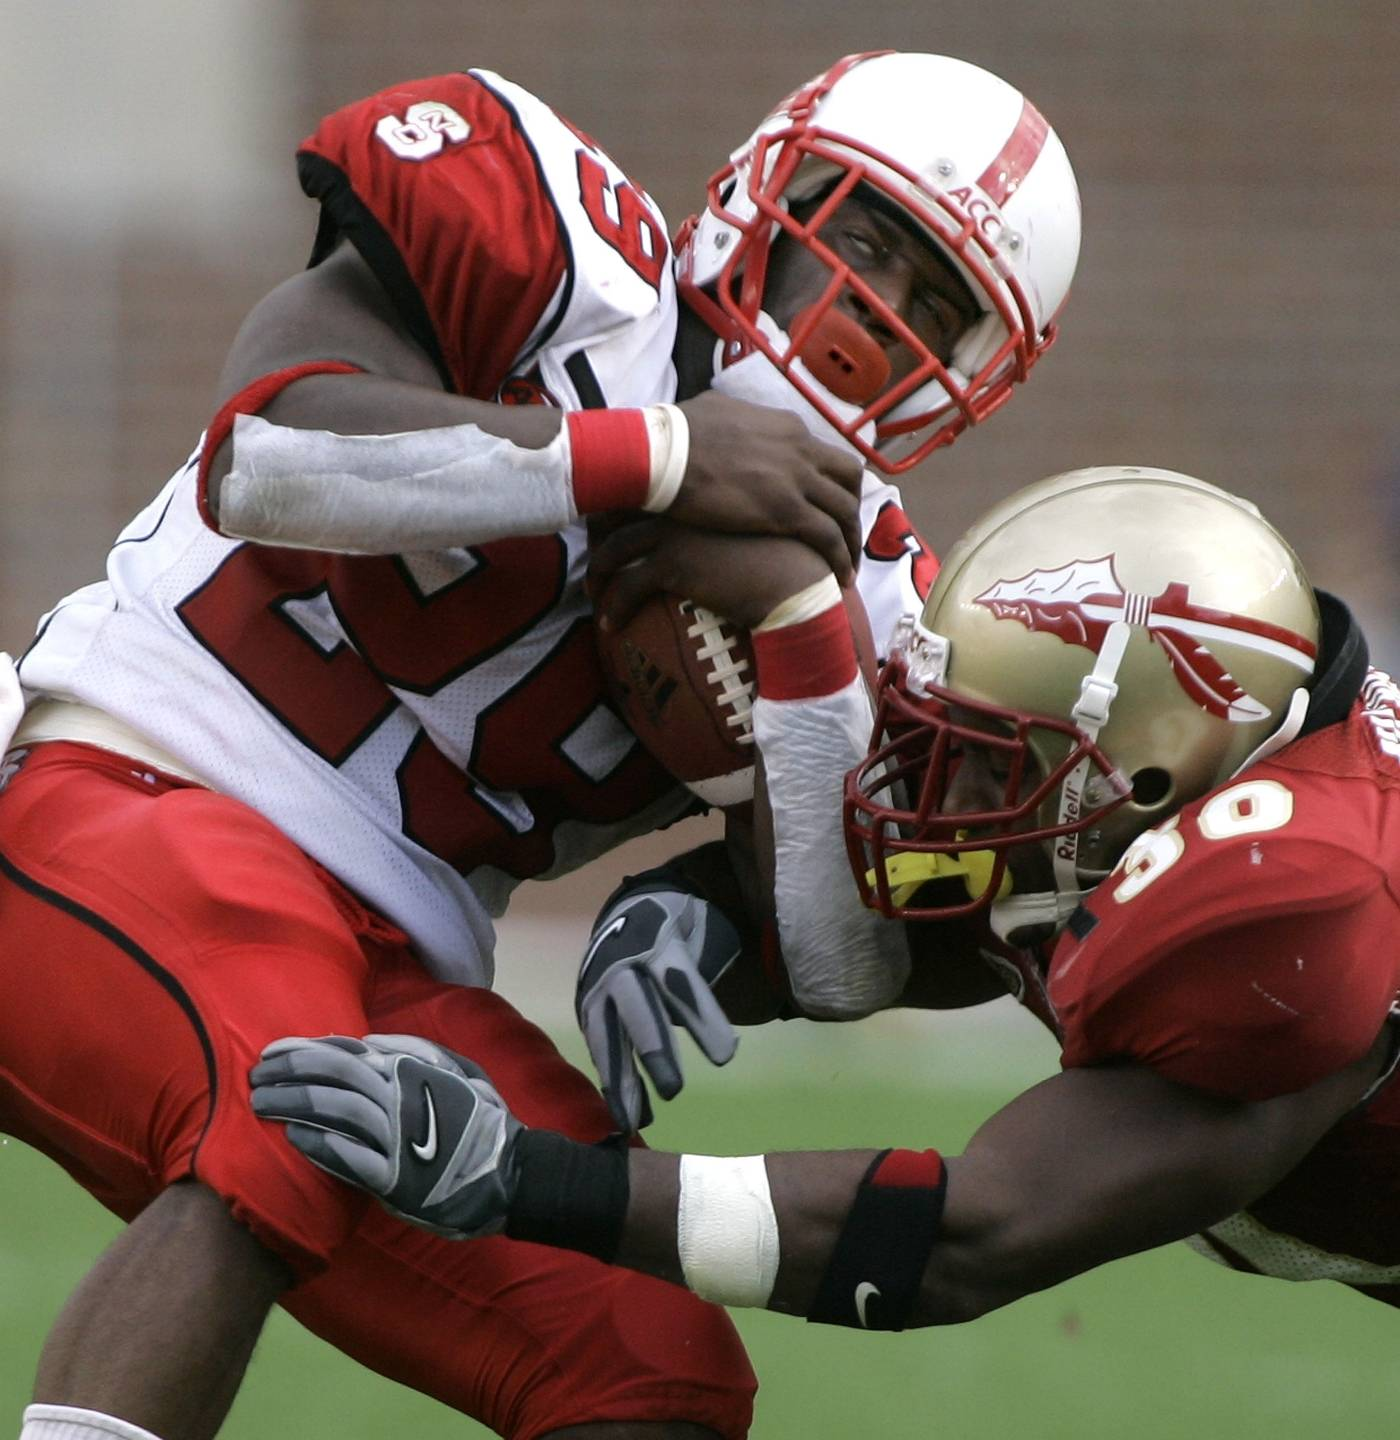 North Carolina State running back Jamelle Eugene, left, is tackled by Florida State's Derek Nicholson during the third quarter. (AP Photo/Phil Coale)